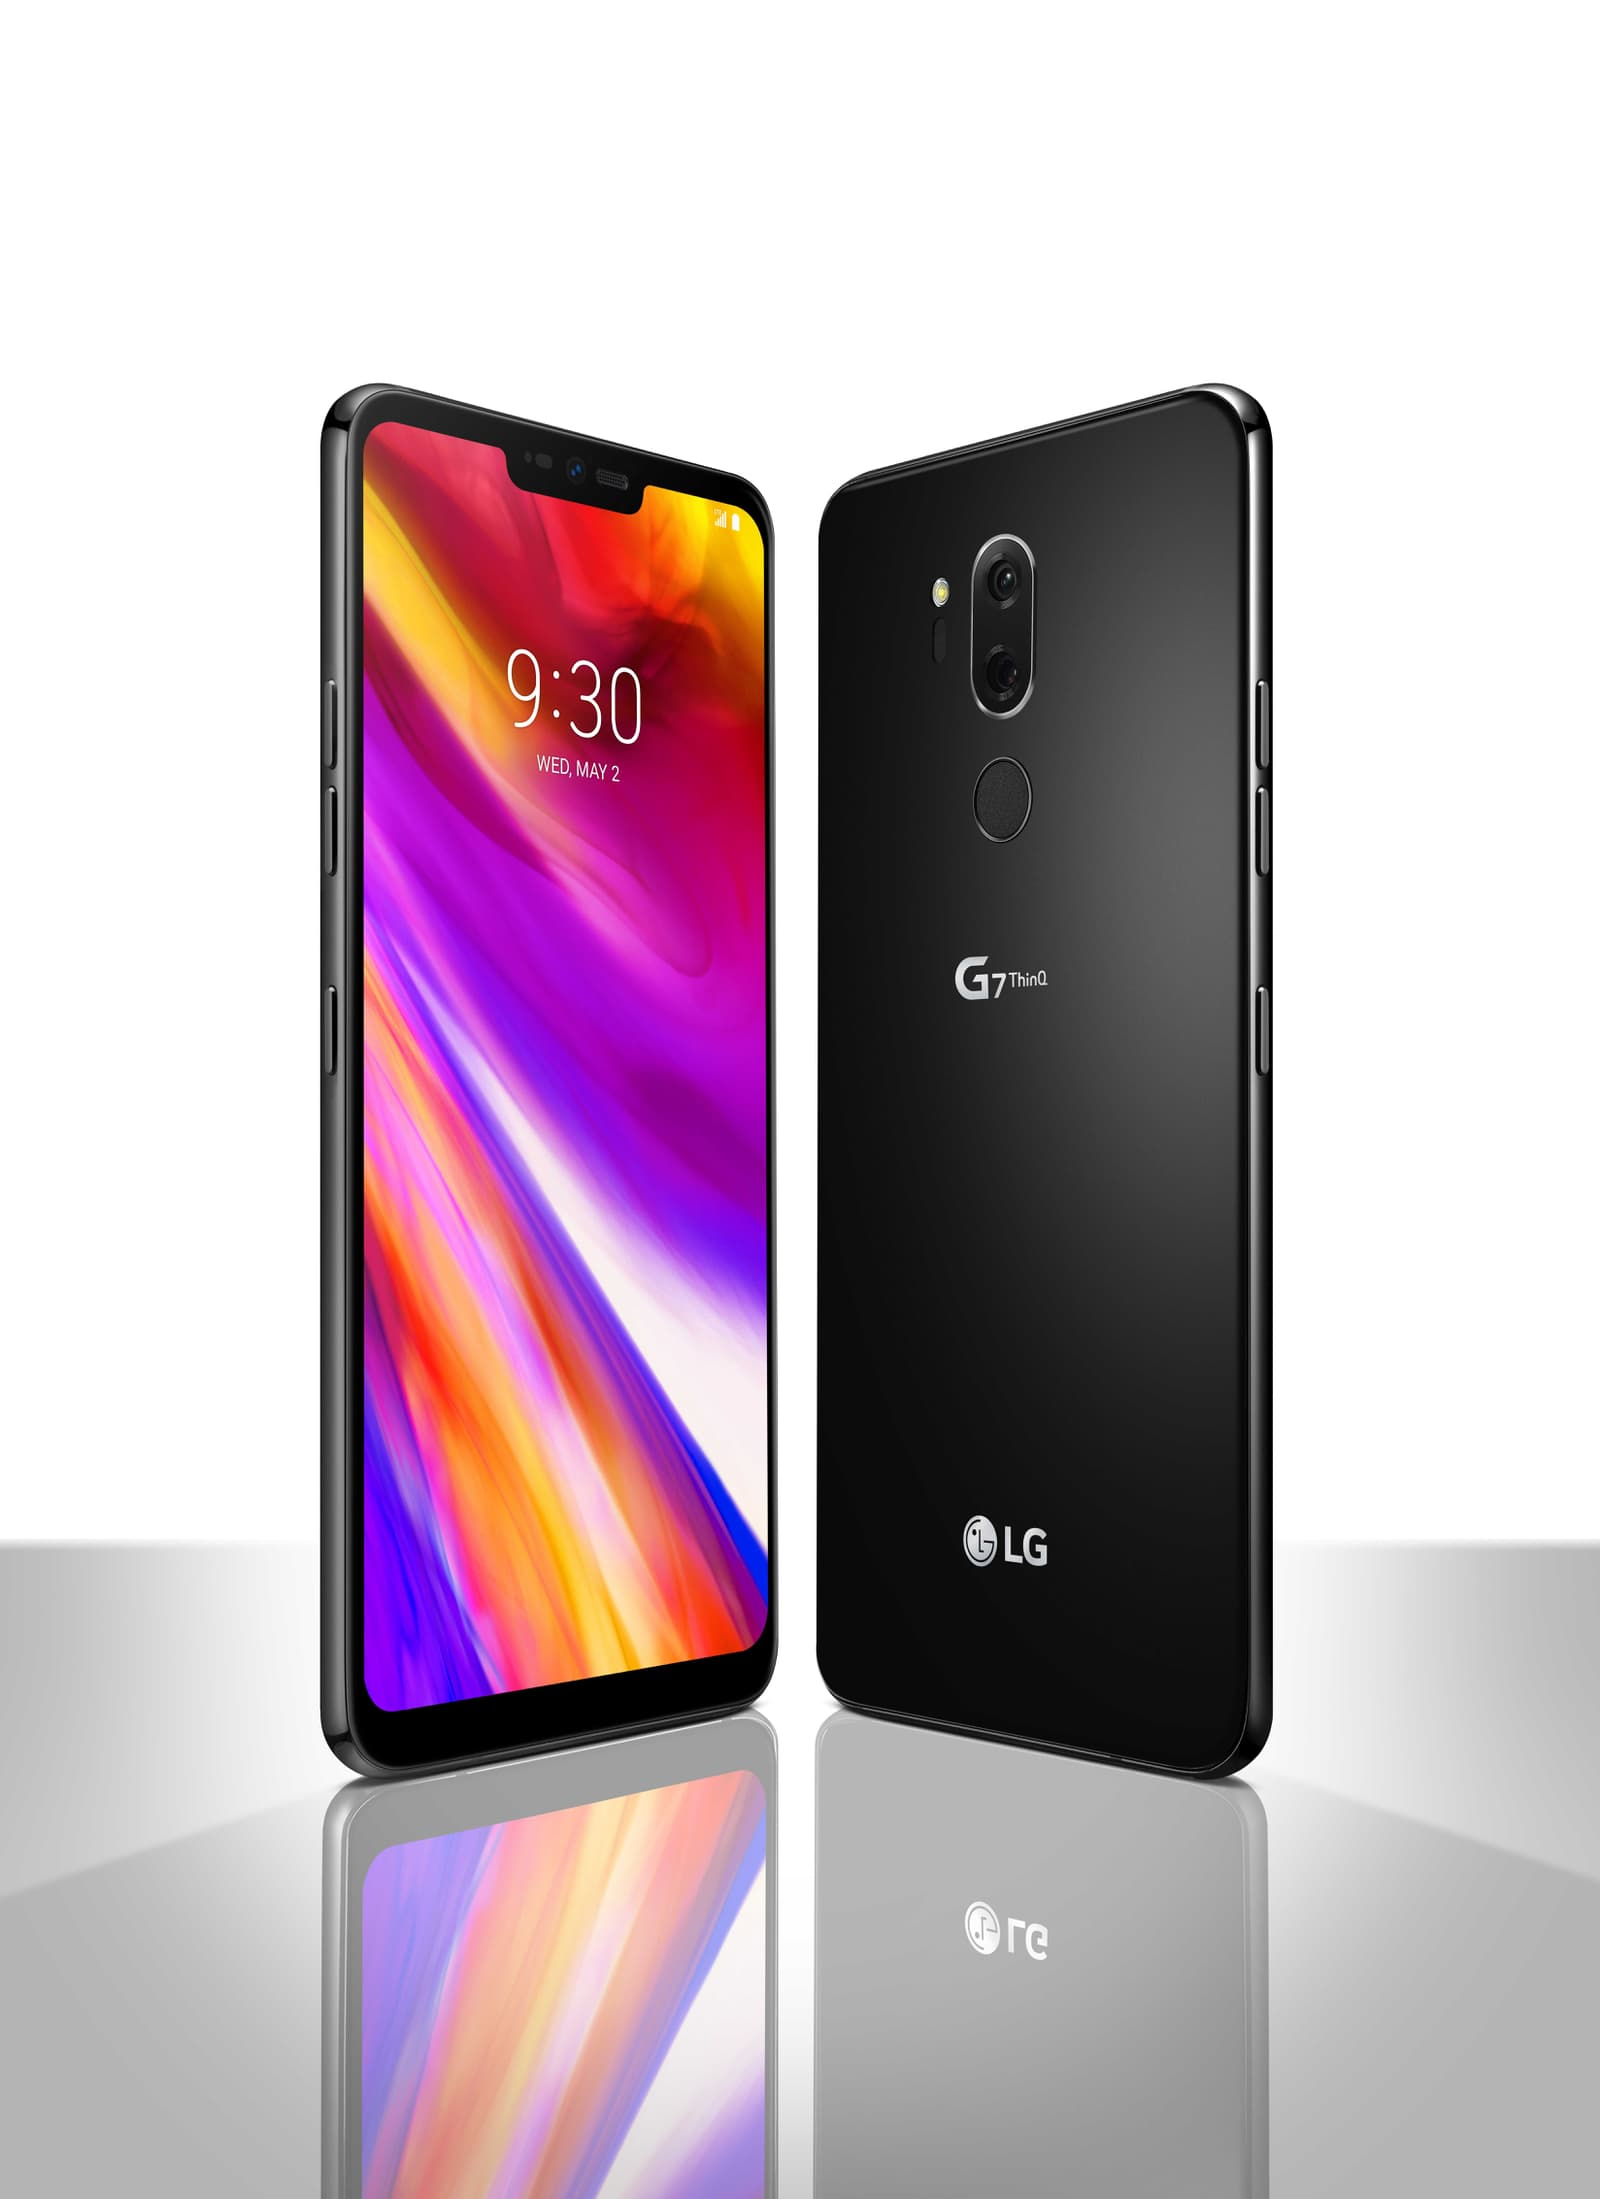 lg g7 thinq buy smartphone compare prices in stores lg. Black Bedroom Furniture Sets. Home Design Ideas